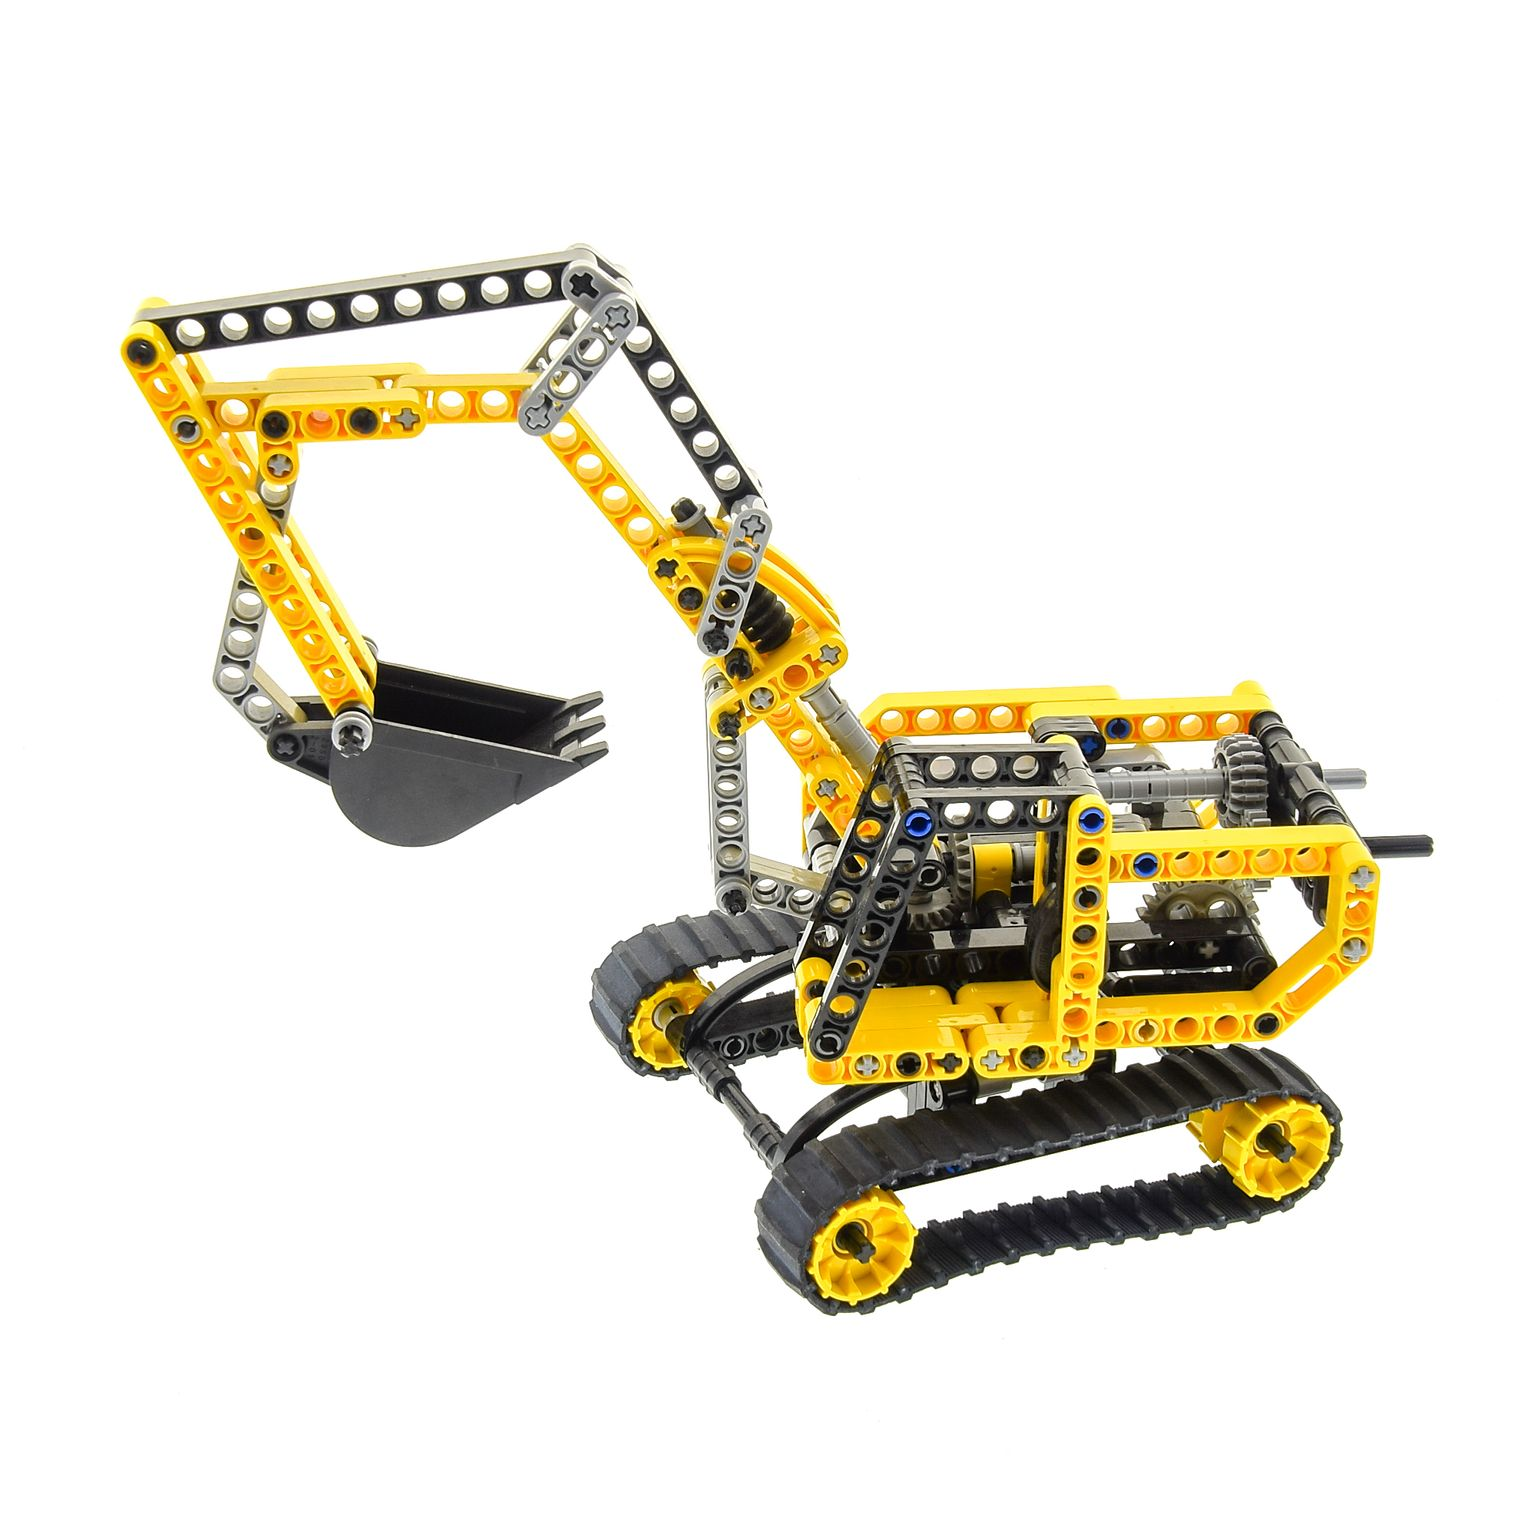 1 x lego technic set modell nr 8419 ketten bagger. Black Bedroom Furniture Sets. Home Design Ideas